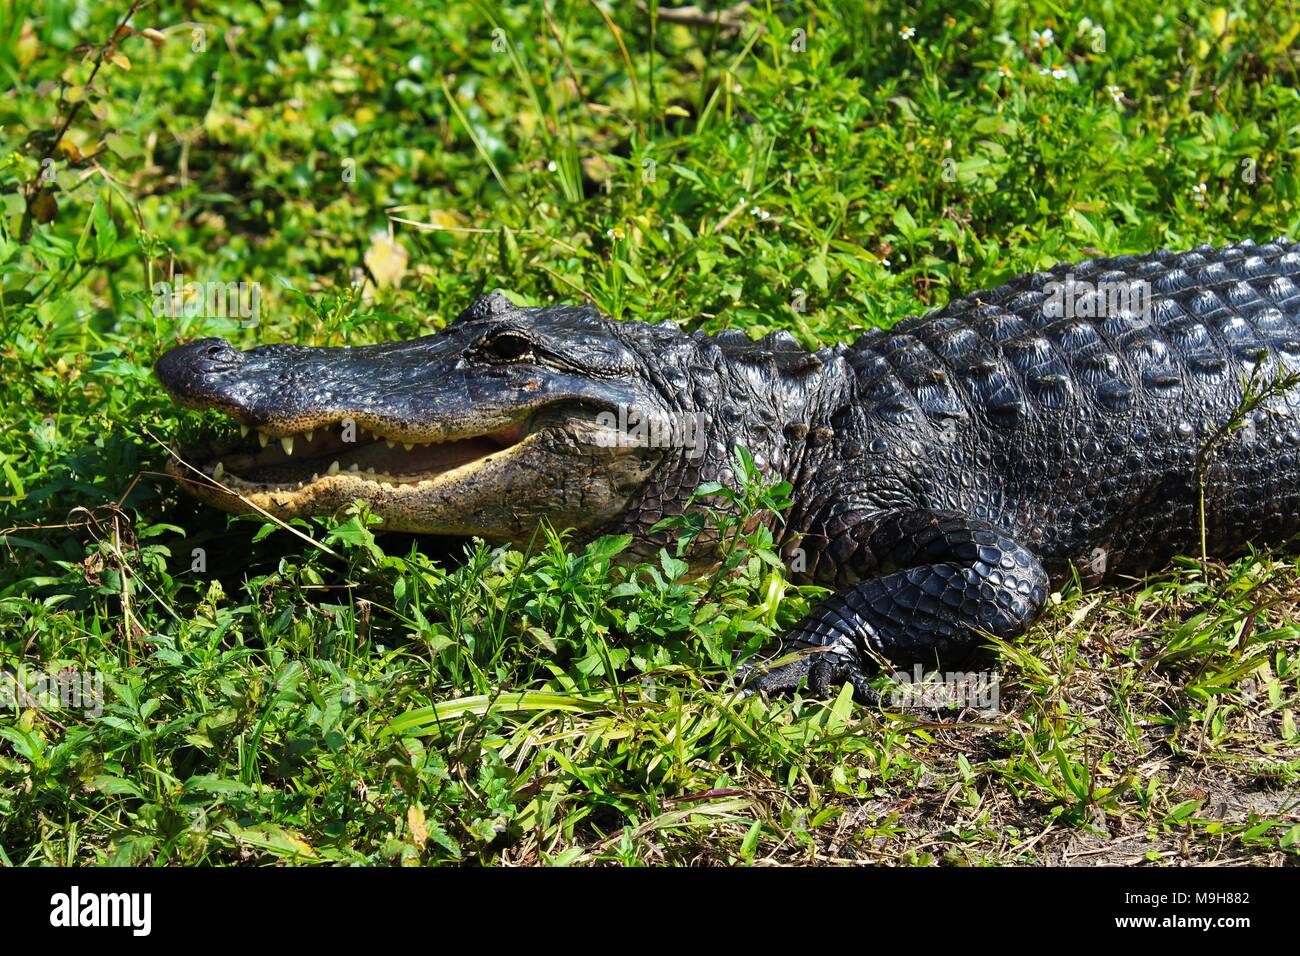 Crocodile sitting on the banks of the river. - Stock Image